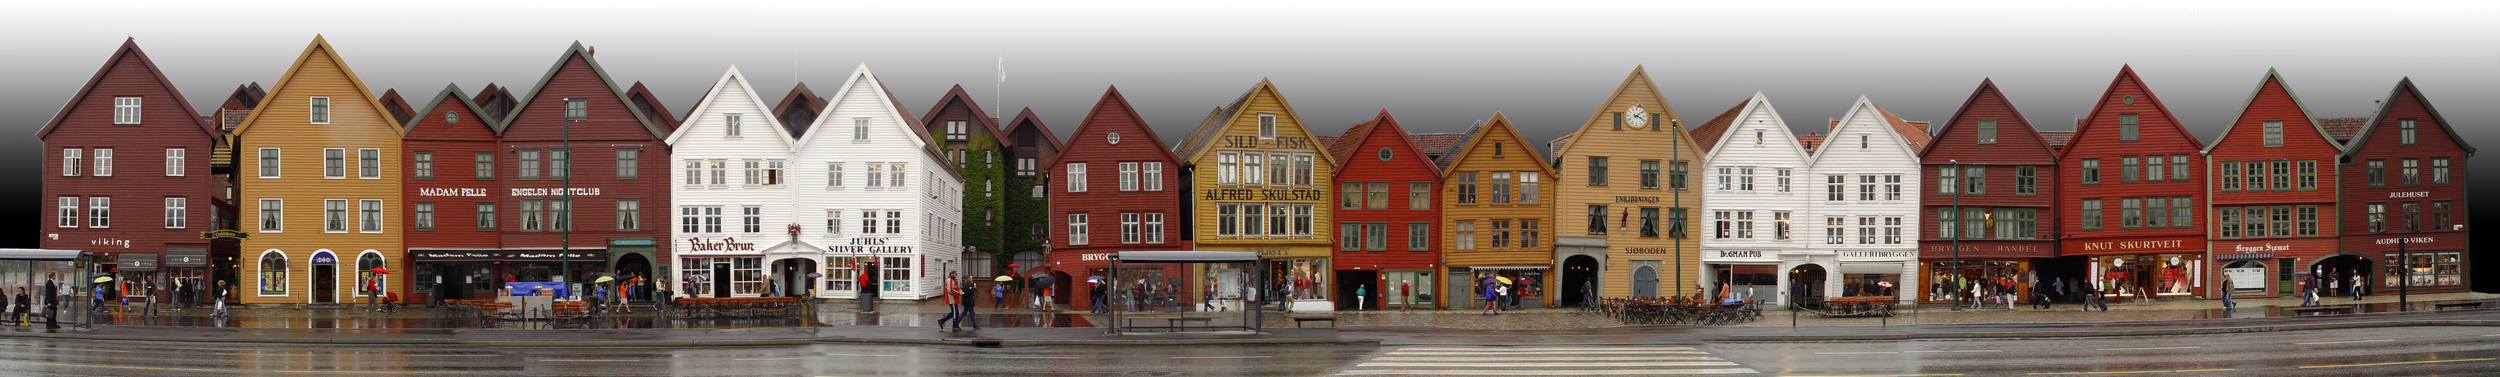 Timber houses along Bryggen, Bergen.   Image from   Wikipedia - click for longer version of the block